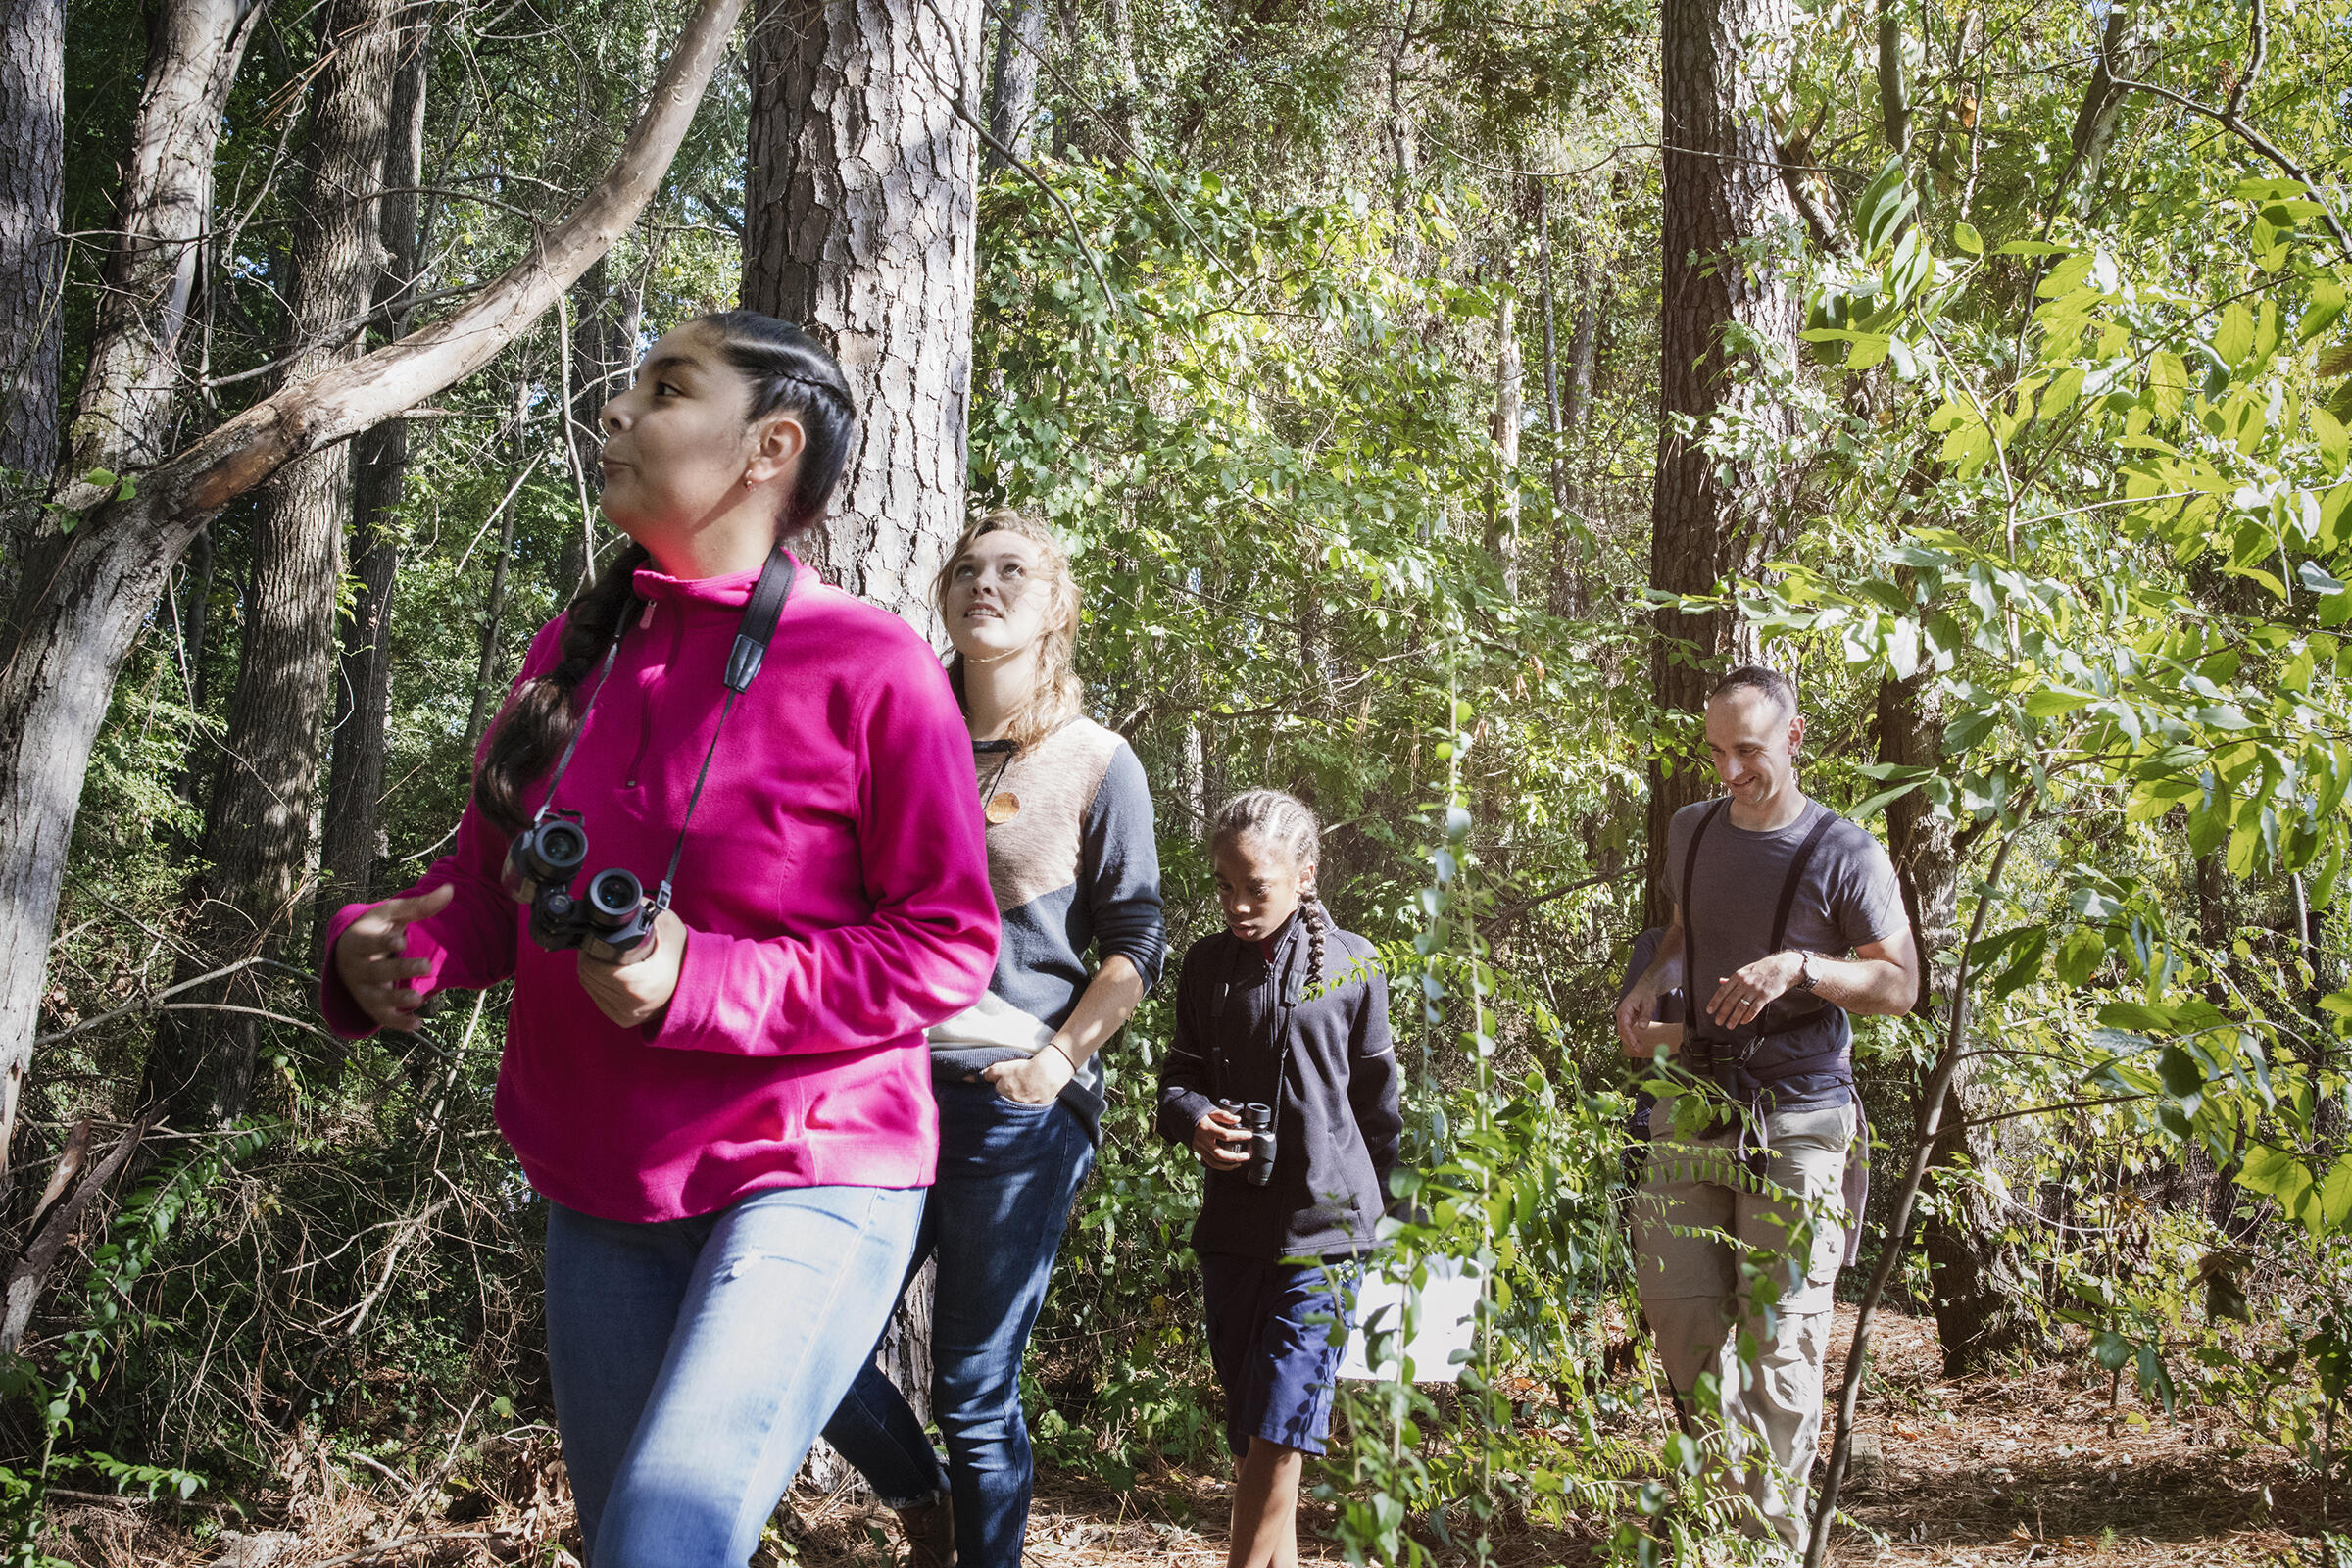 The class joins Baker and Birmingham Audubon's Ansel Payne to search for Brown-headed Nuthatches and Red-bellied Woodpeckers in their woods. Mike Fernandez/Audubon